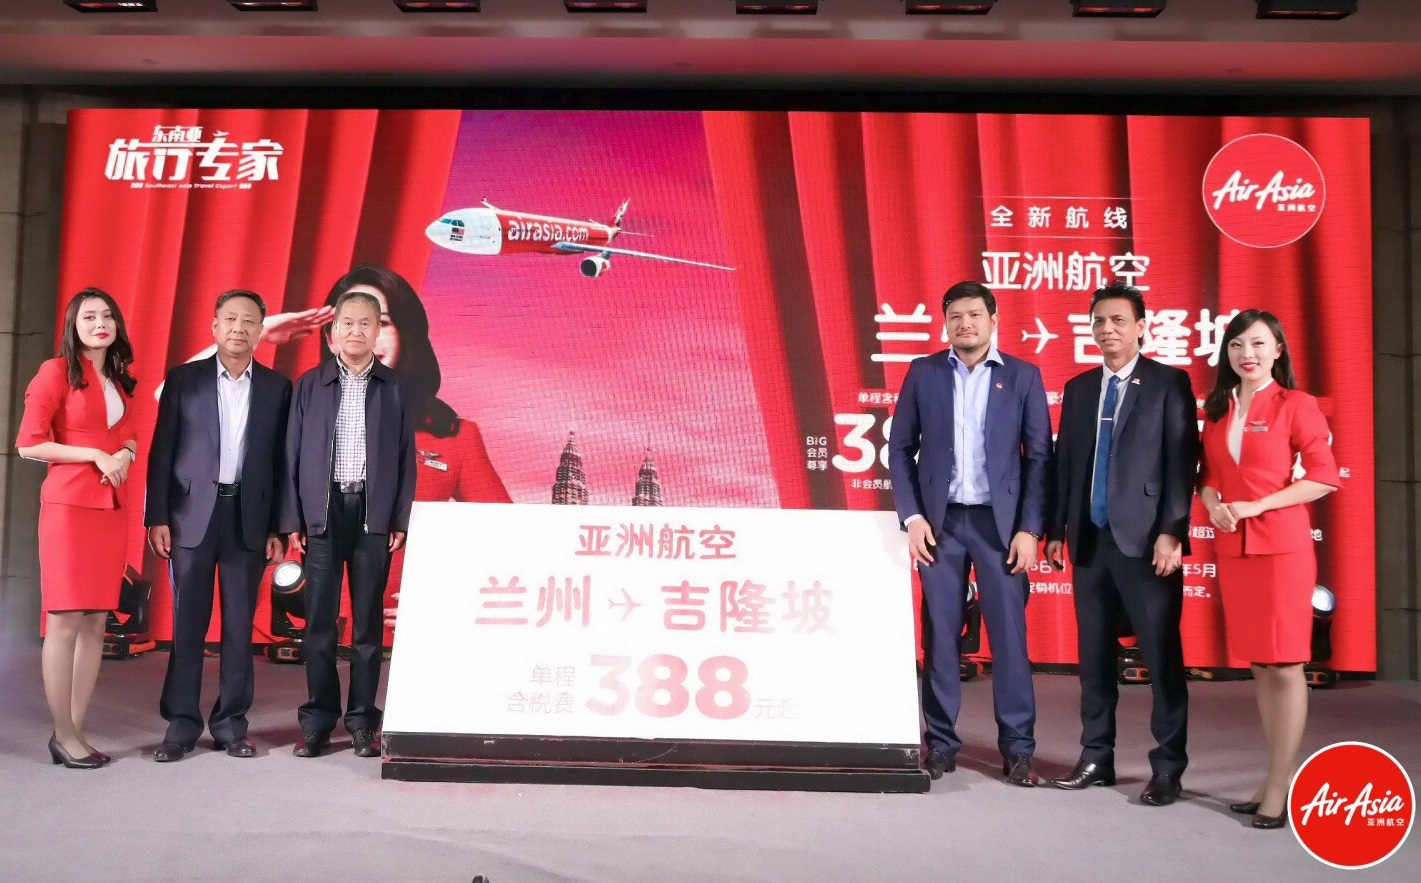 Photo Caption: (L-R) General Manager of Lanzhou Airport Mr. Wang Haide, Deputy Director of the Department of Culture and Tourism of Gansu Province Mr. Huo Yulong, CEO of AirAsia X Malaysia Mr. Benyamin Ismail and Minister of Tourism for the Embassy of Malaysia in Beijing Mr. Zalizam Zakaria flanked by cabin crew